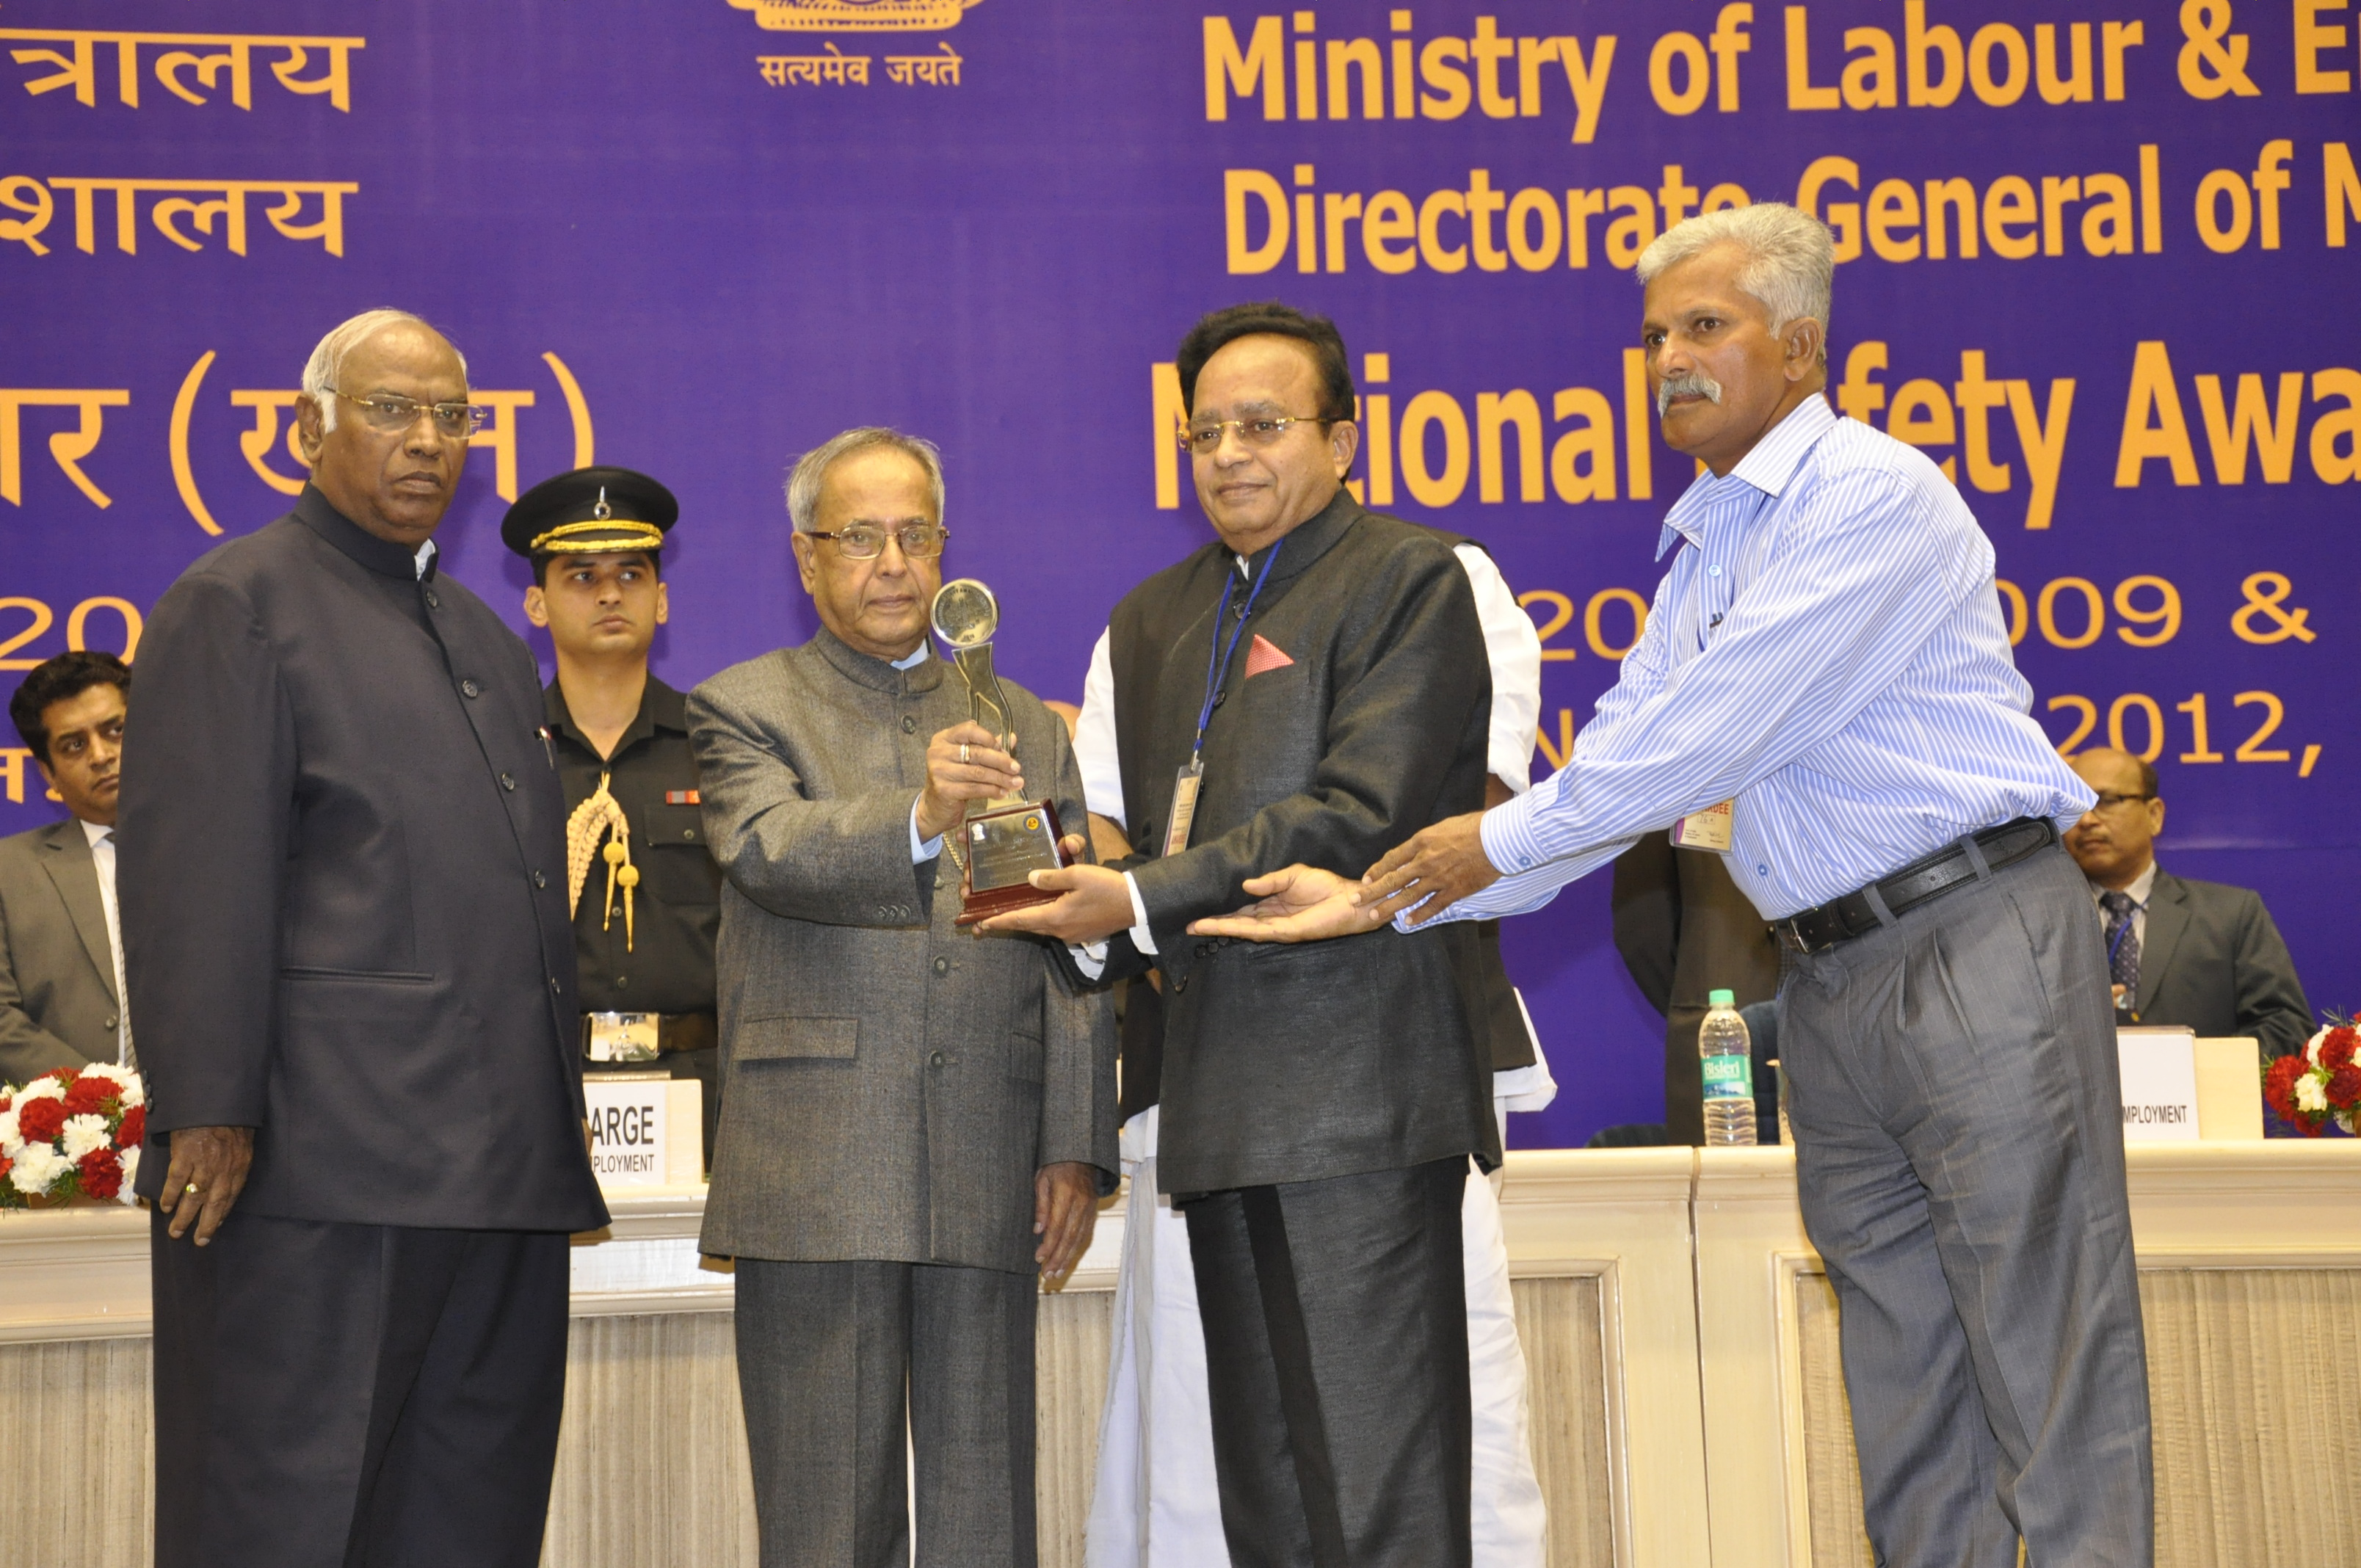 Mr. Narendrakumar A. Baldota (third from left) Chairman & Managing Director, MSPL Limited and Mr. Basheer, Foreman, Vyasanakere Iron Ore Mine, Hosapete are presented with National Safety Award (Mines) for 2010 by the Hon'ble President of India, Shri. Pranab Mukherjee at a function held in New Delhi.